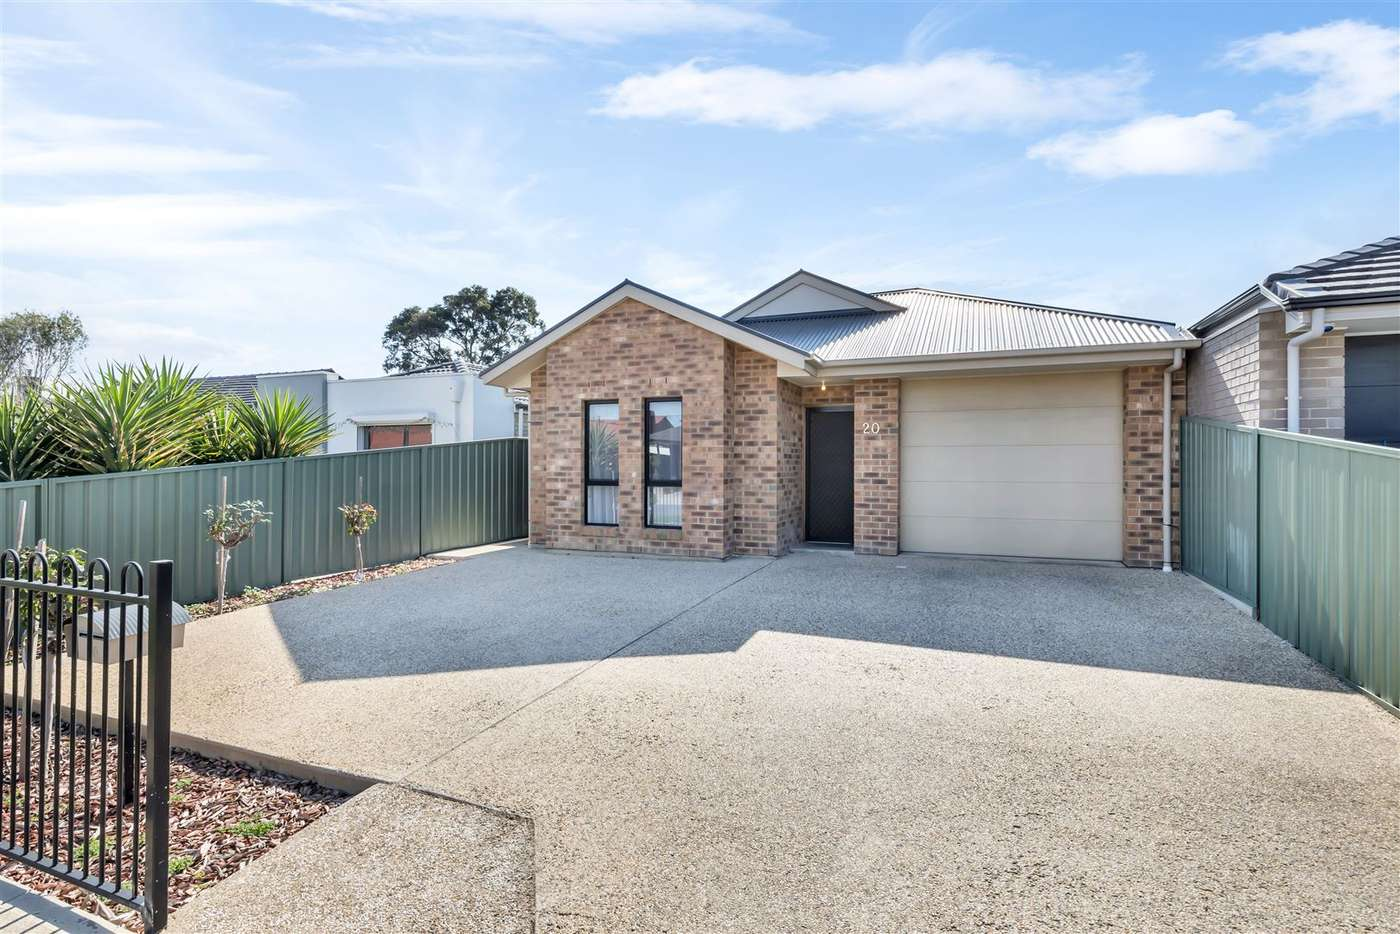 Main view of Homely house listing, 20 Davis Street, Woodville South SA 5011